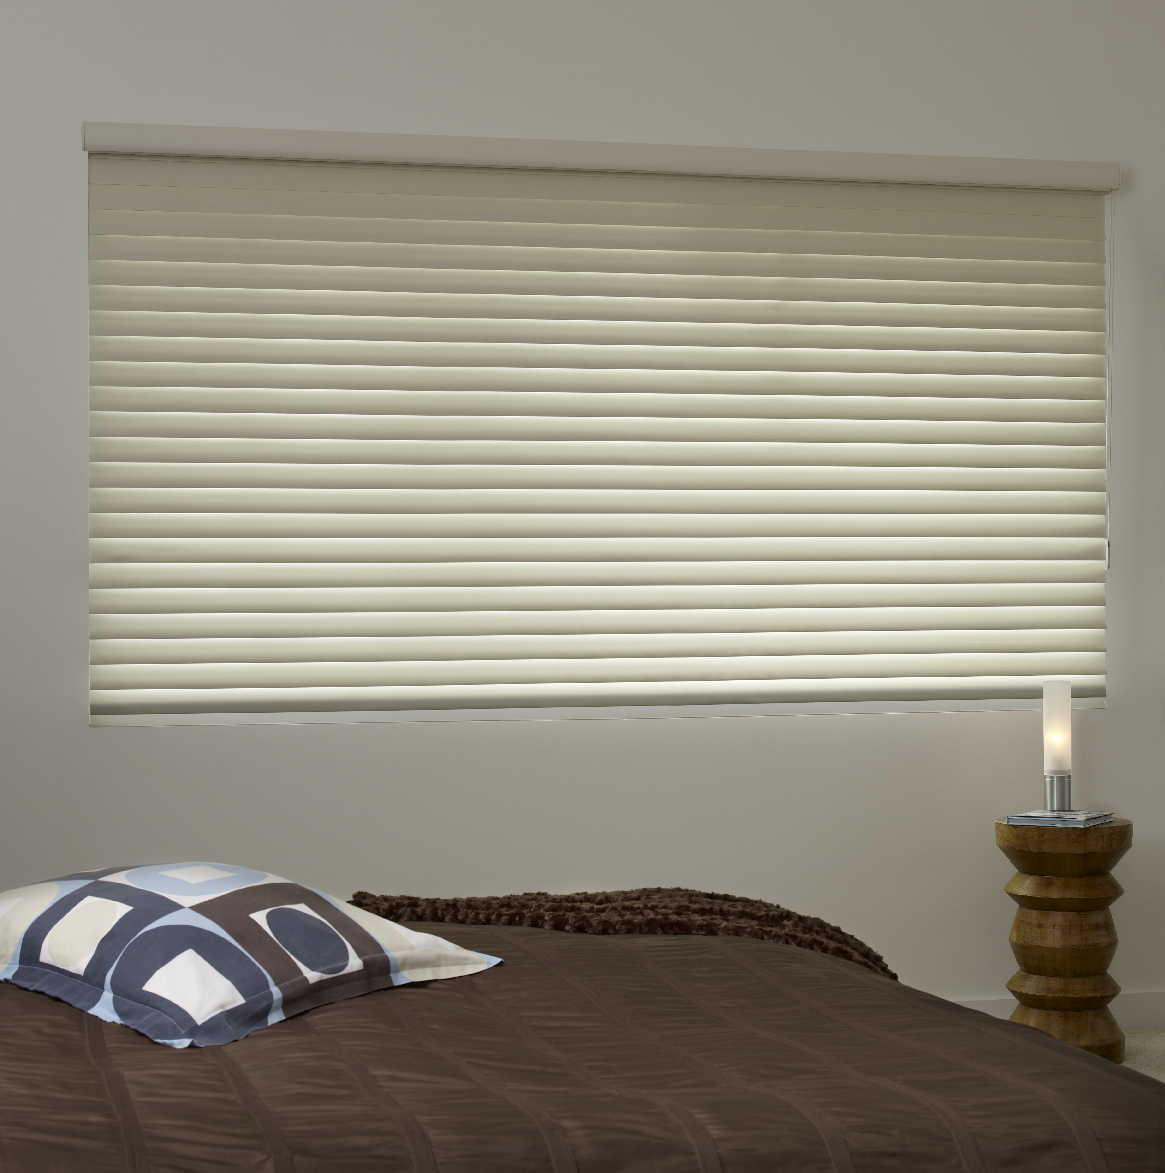 Window blinds for sale window shade price list brands amp review - 2 1 2 In Room Darkening Sheer Shading